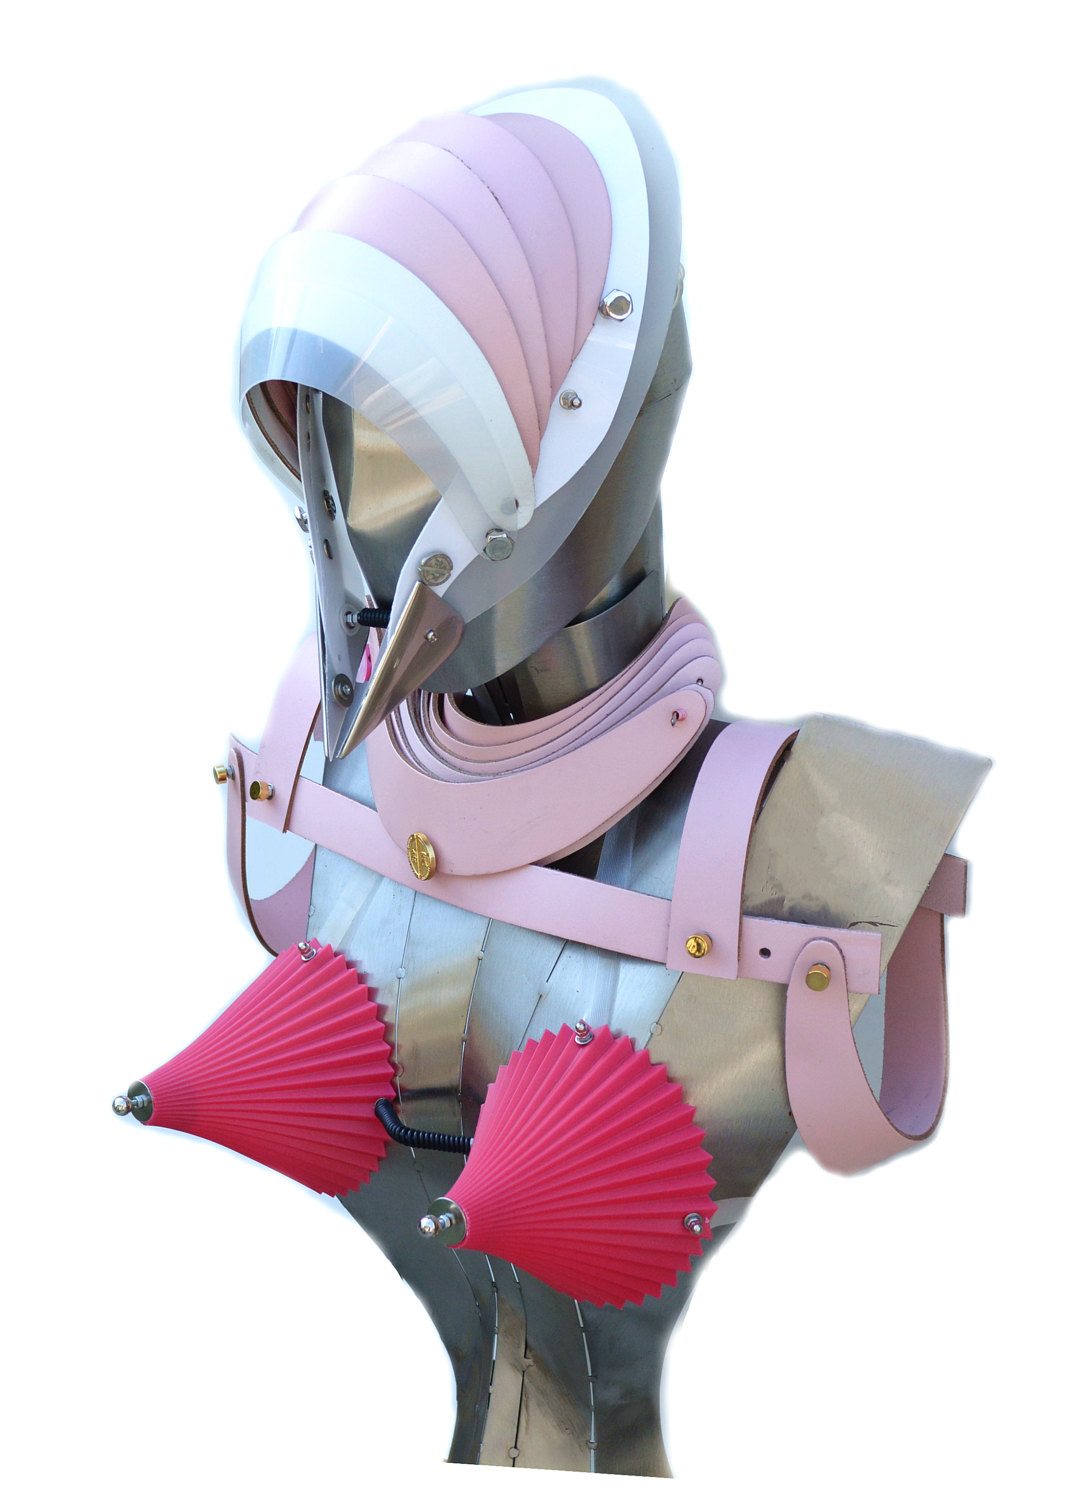 Leather harness pauldron fashion statement accessory cosplay costume cyber punk futuristic pink leather